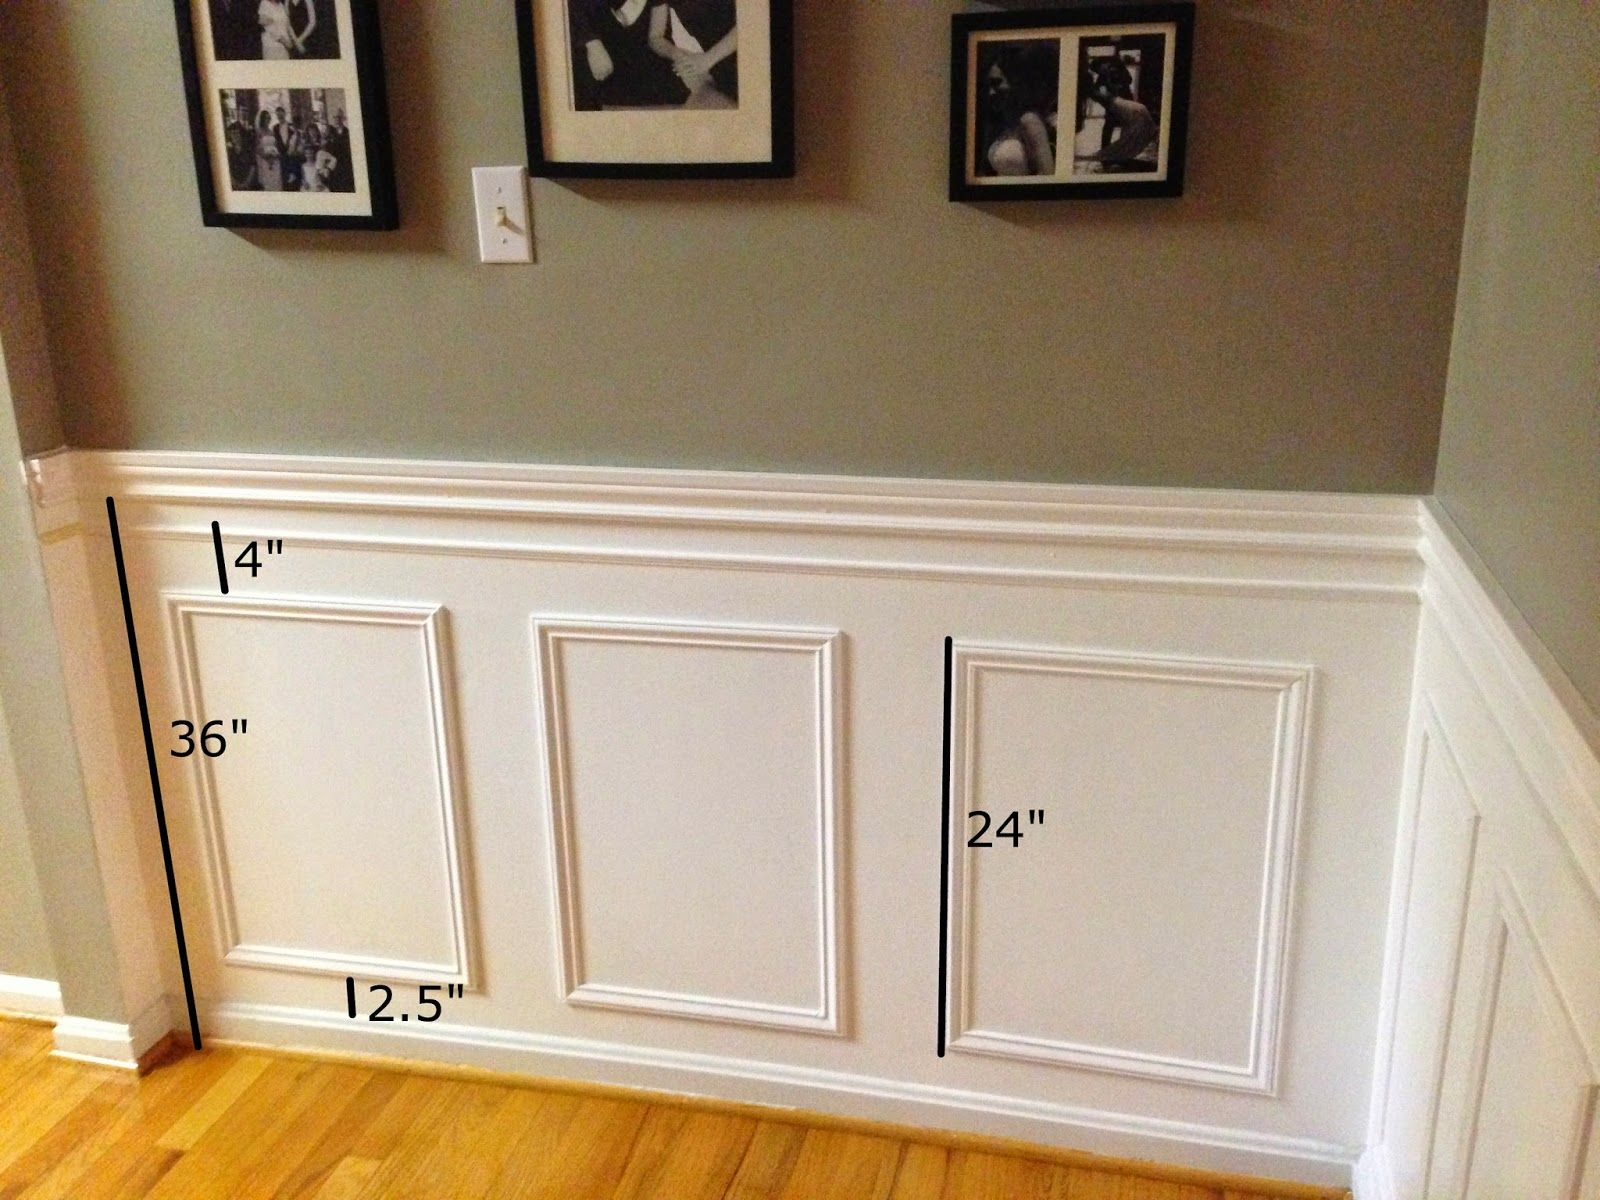 Picture Frame Moulding On Walls little brick home: how to install picture frame moulding: part one